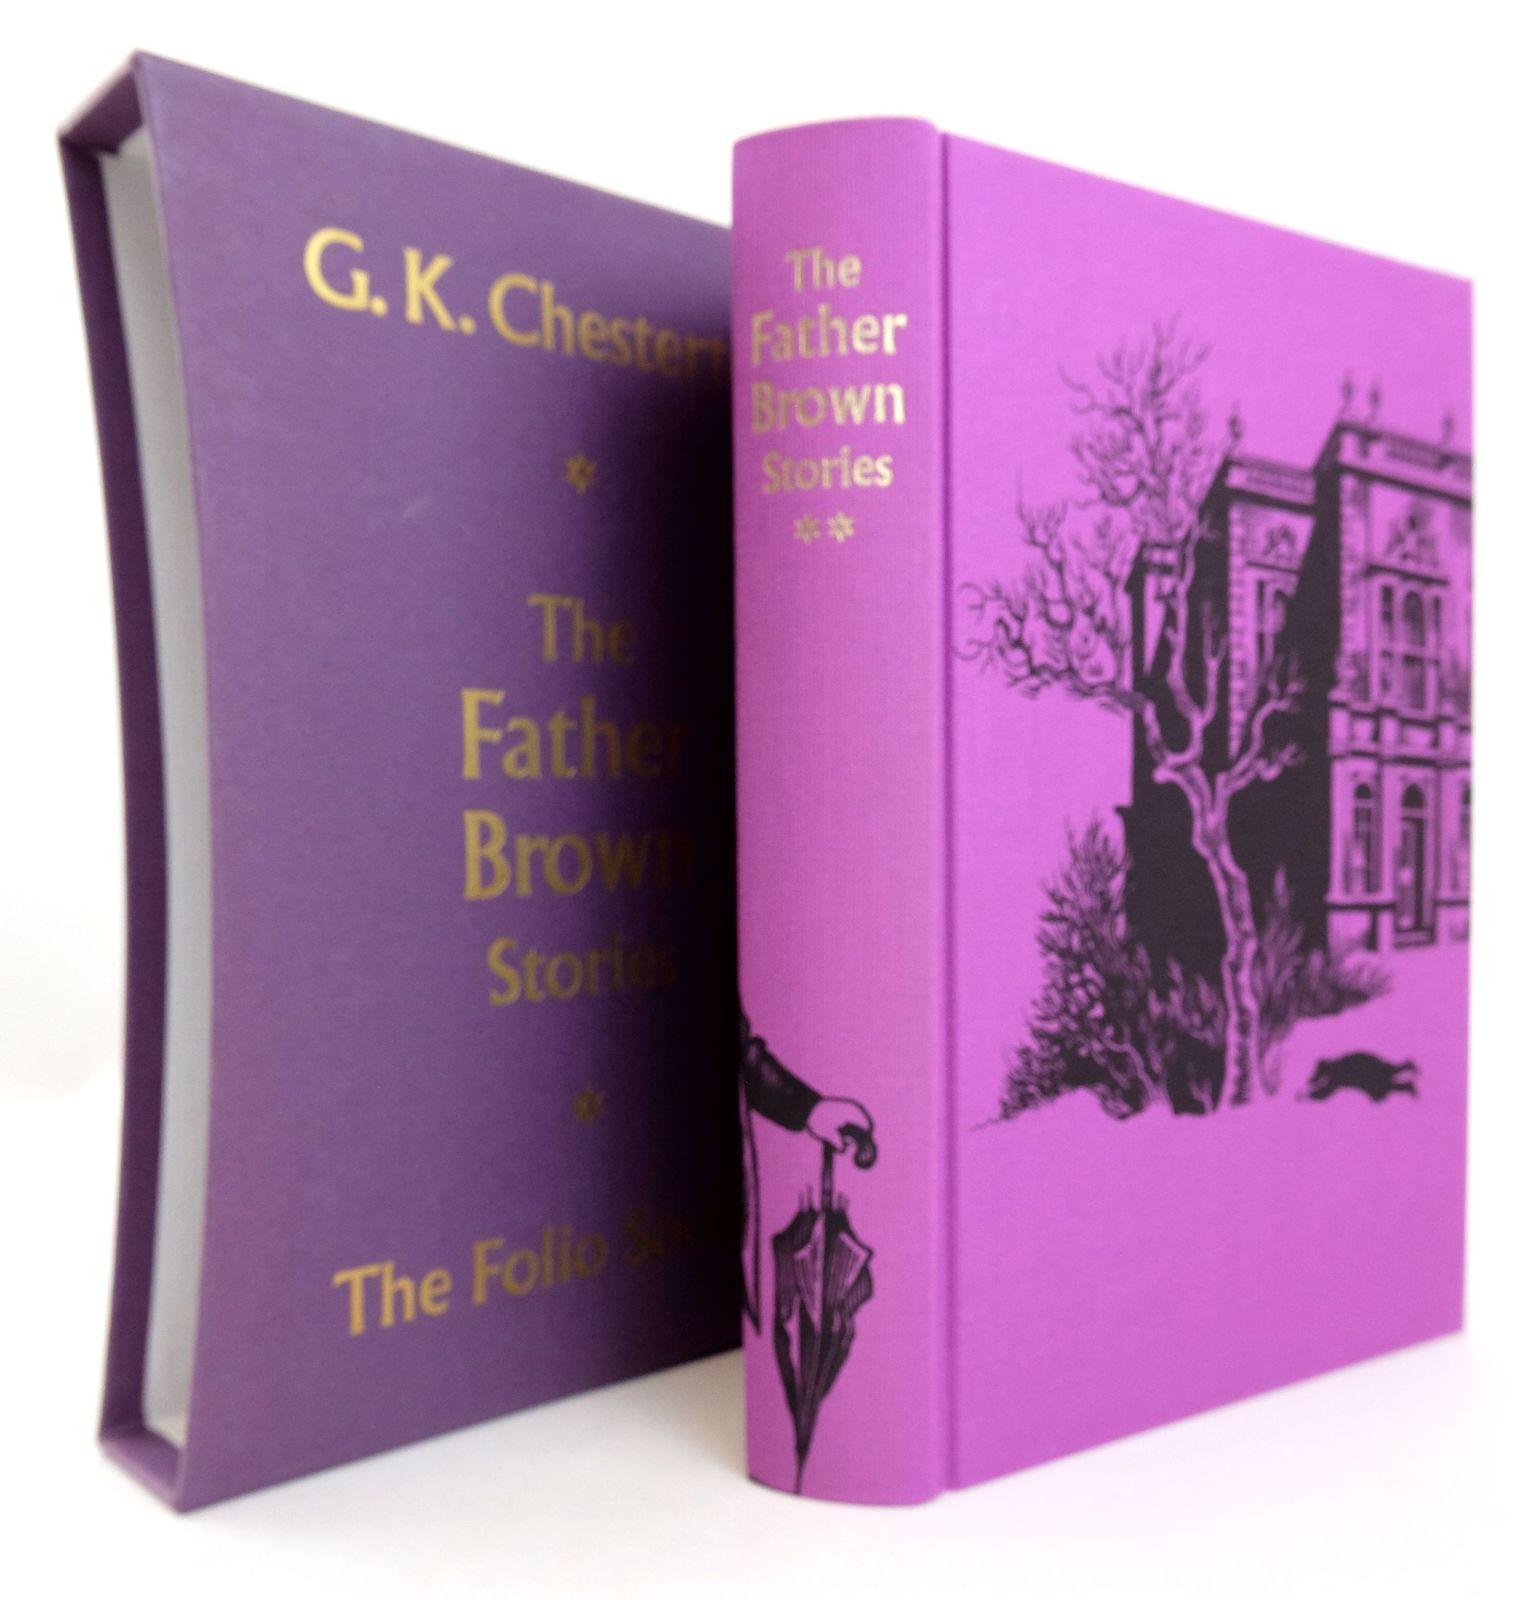 Photo of THE FATHER BROWN STORIES written by Chesterton, G.K. illustrated by Biro, Val published by Folio Society (STOCK CODE: 1819242)  for sale by Stella & Rose's Books